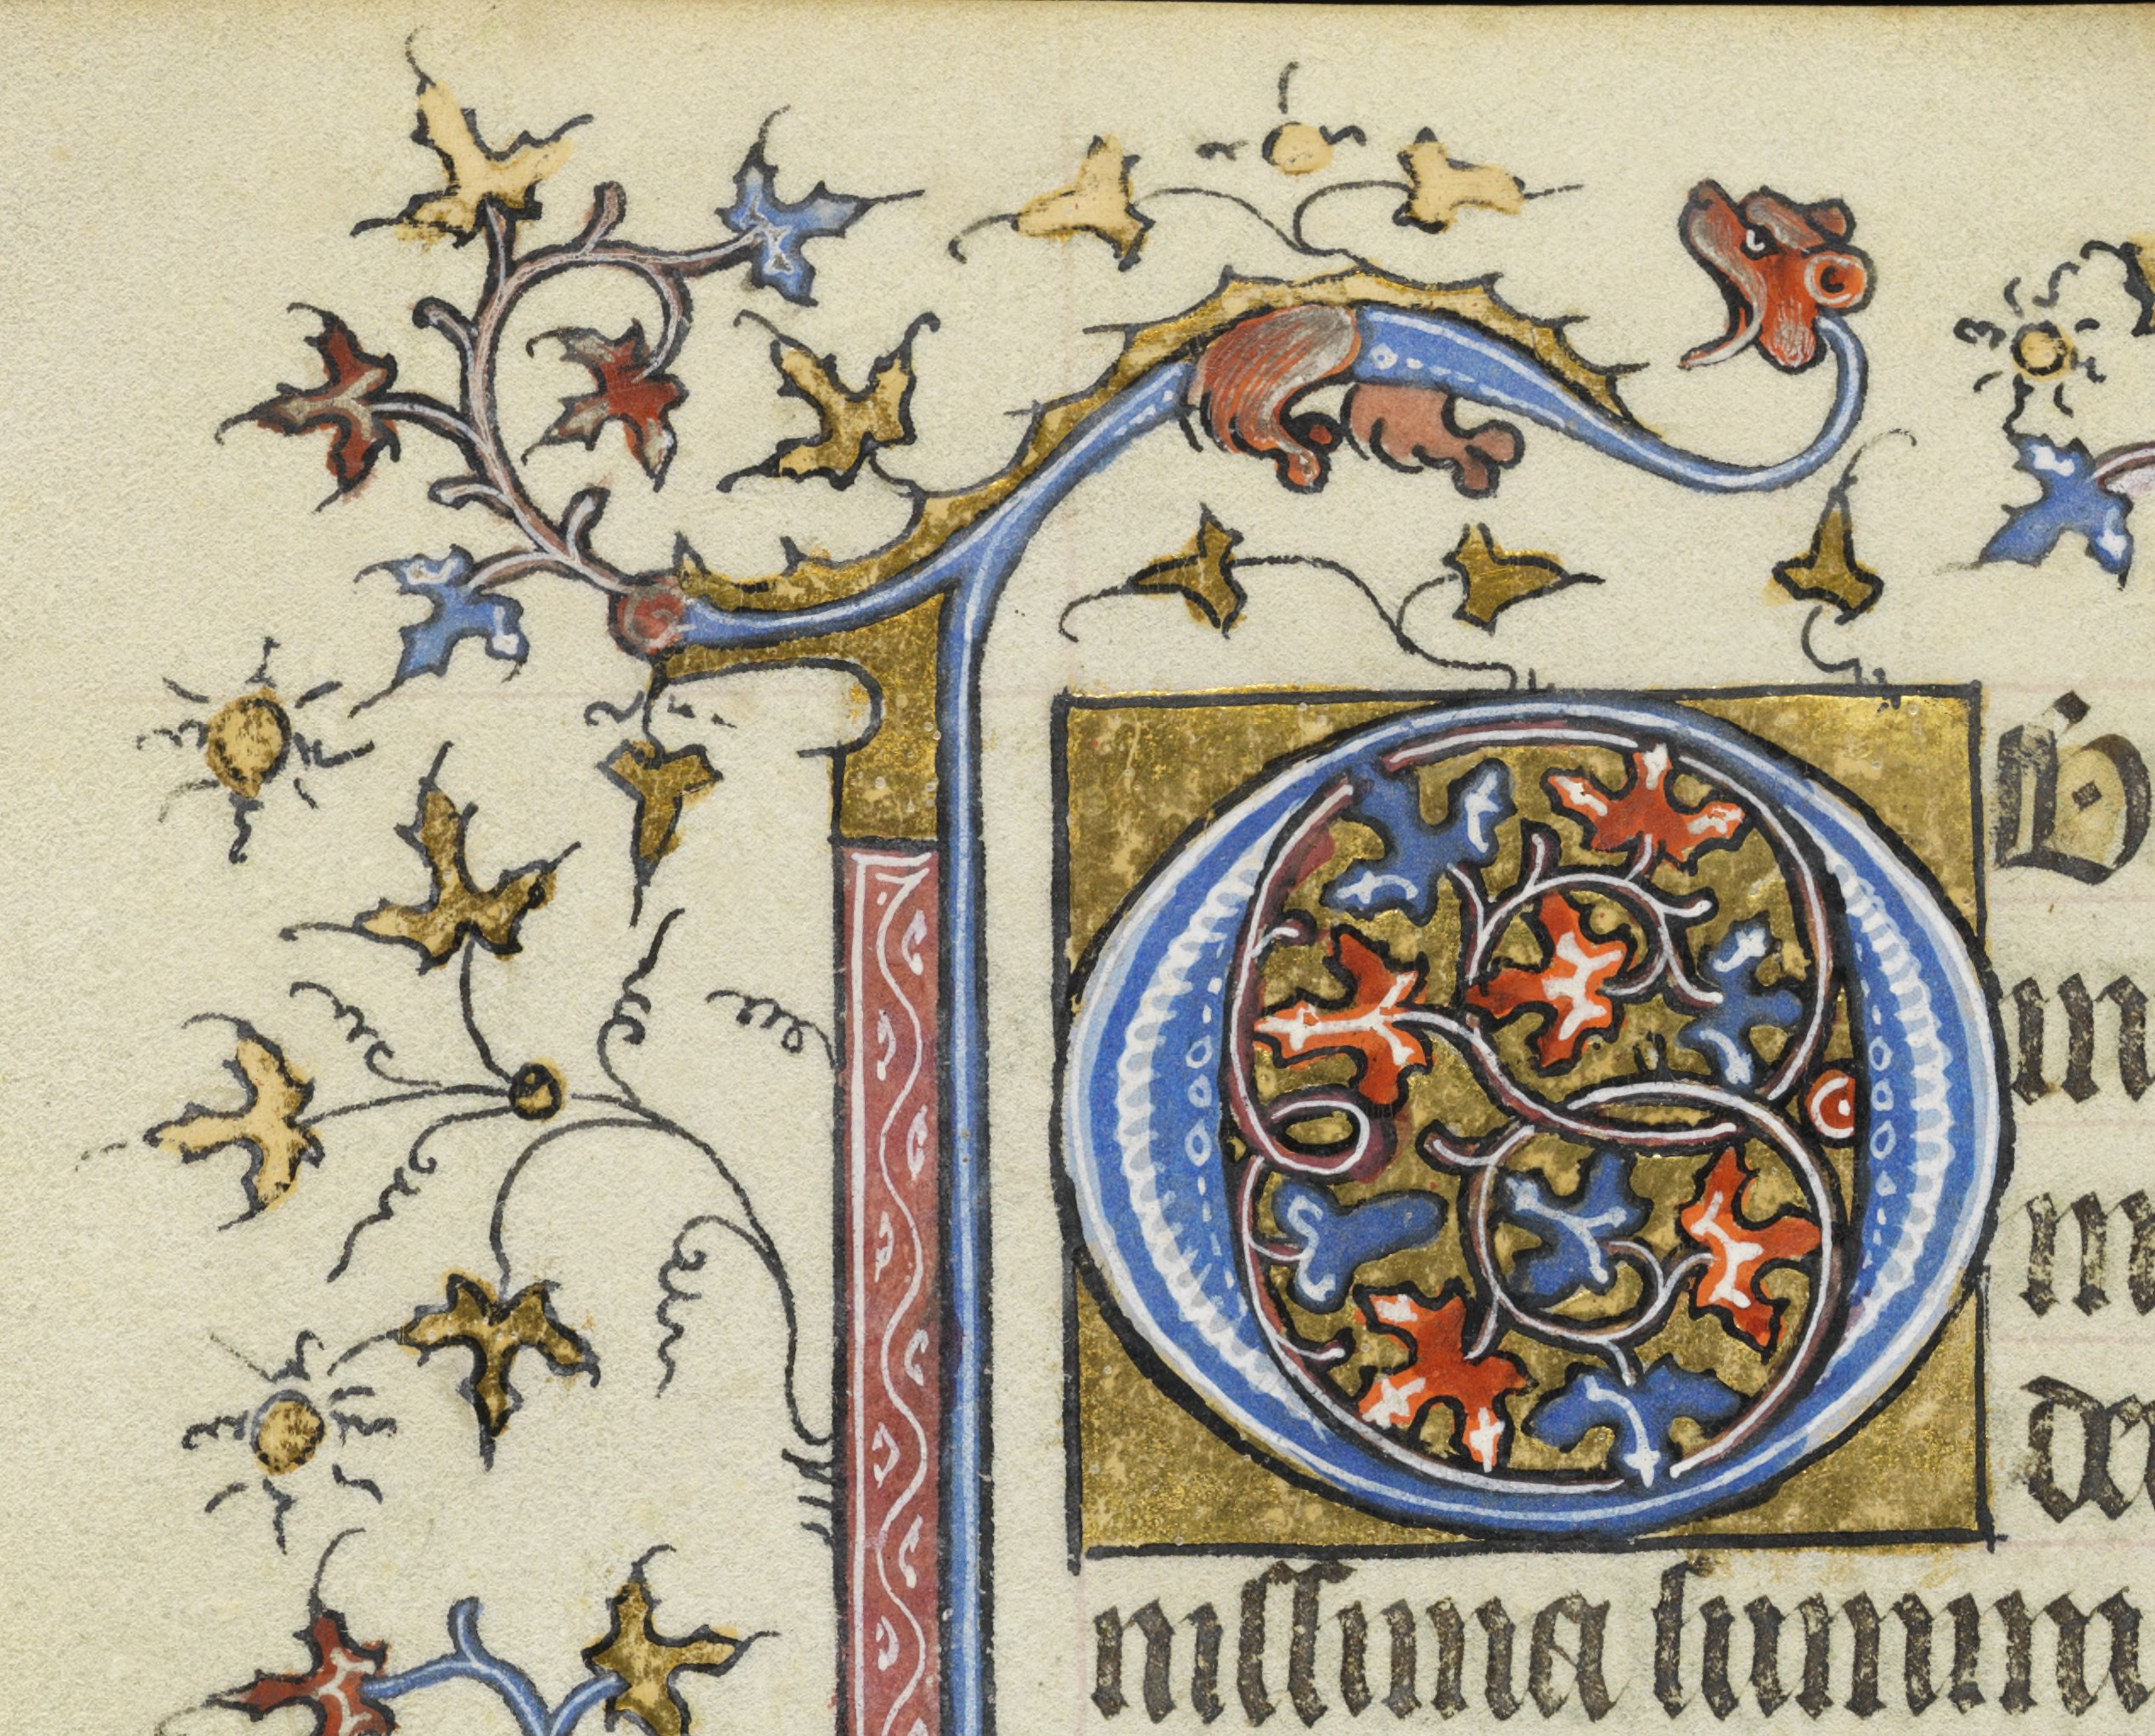 Book of hours from Paris